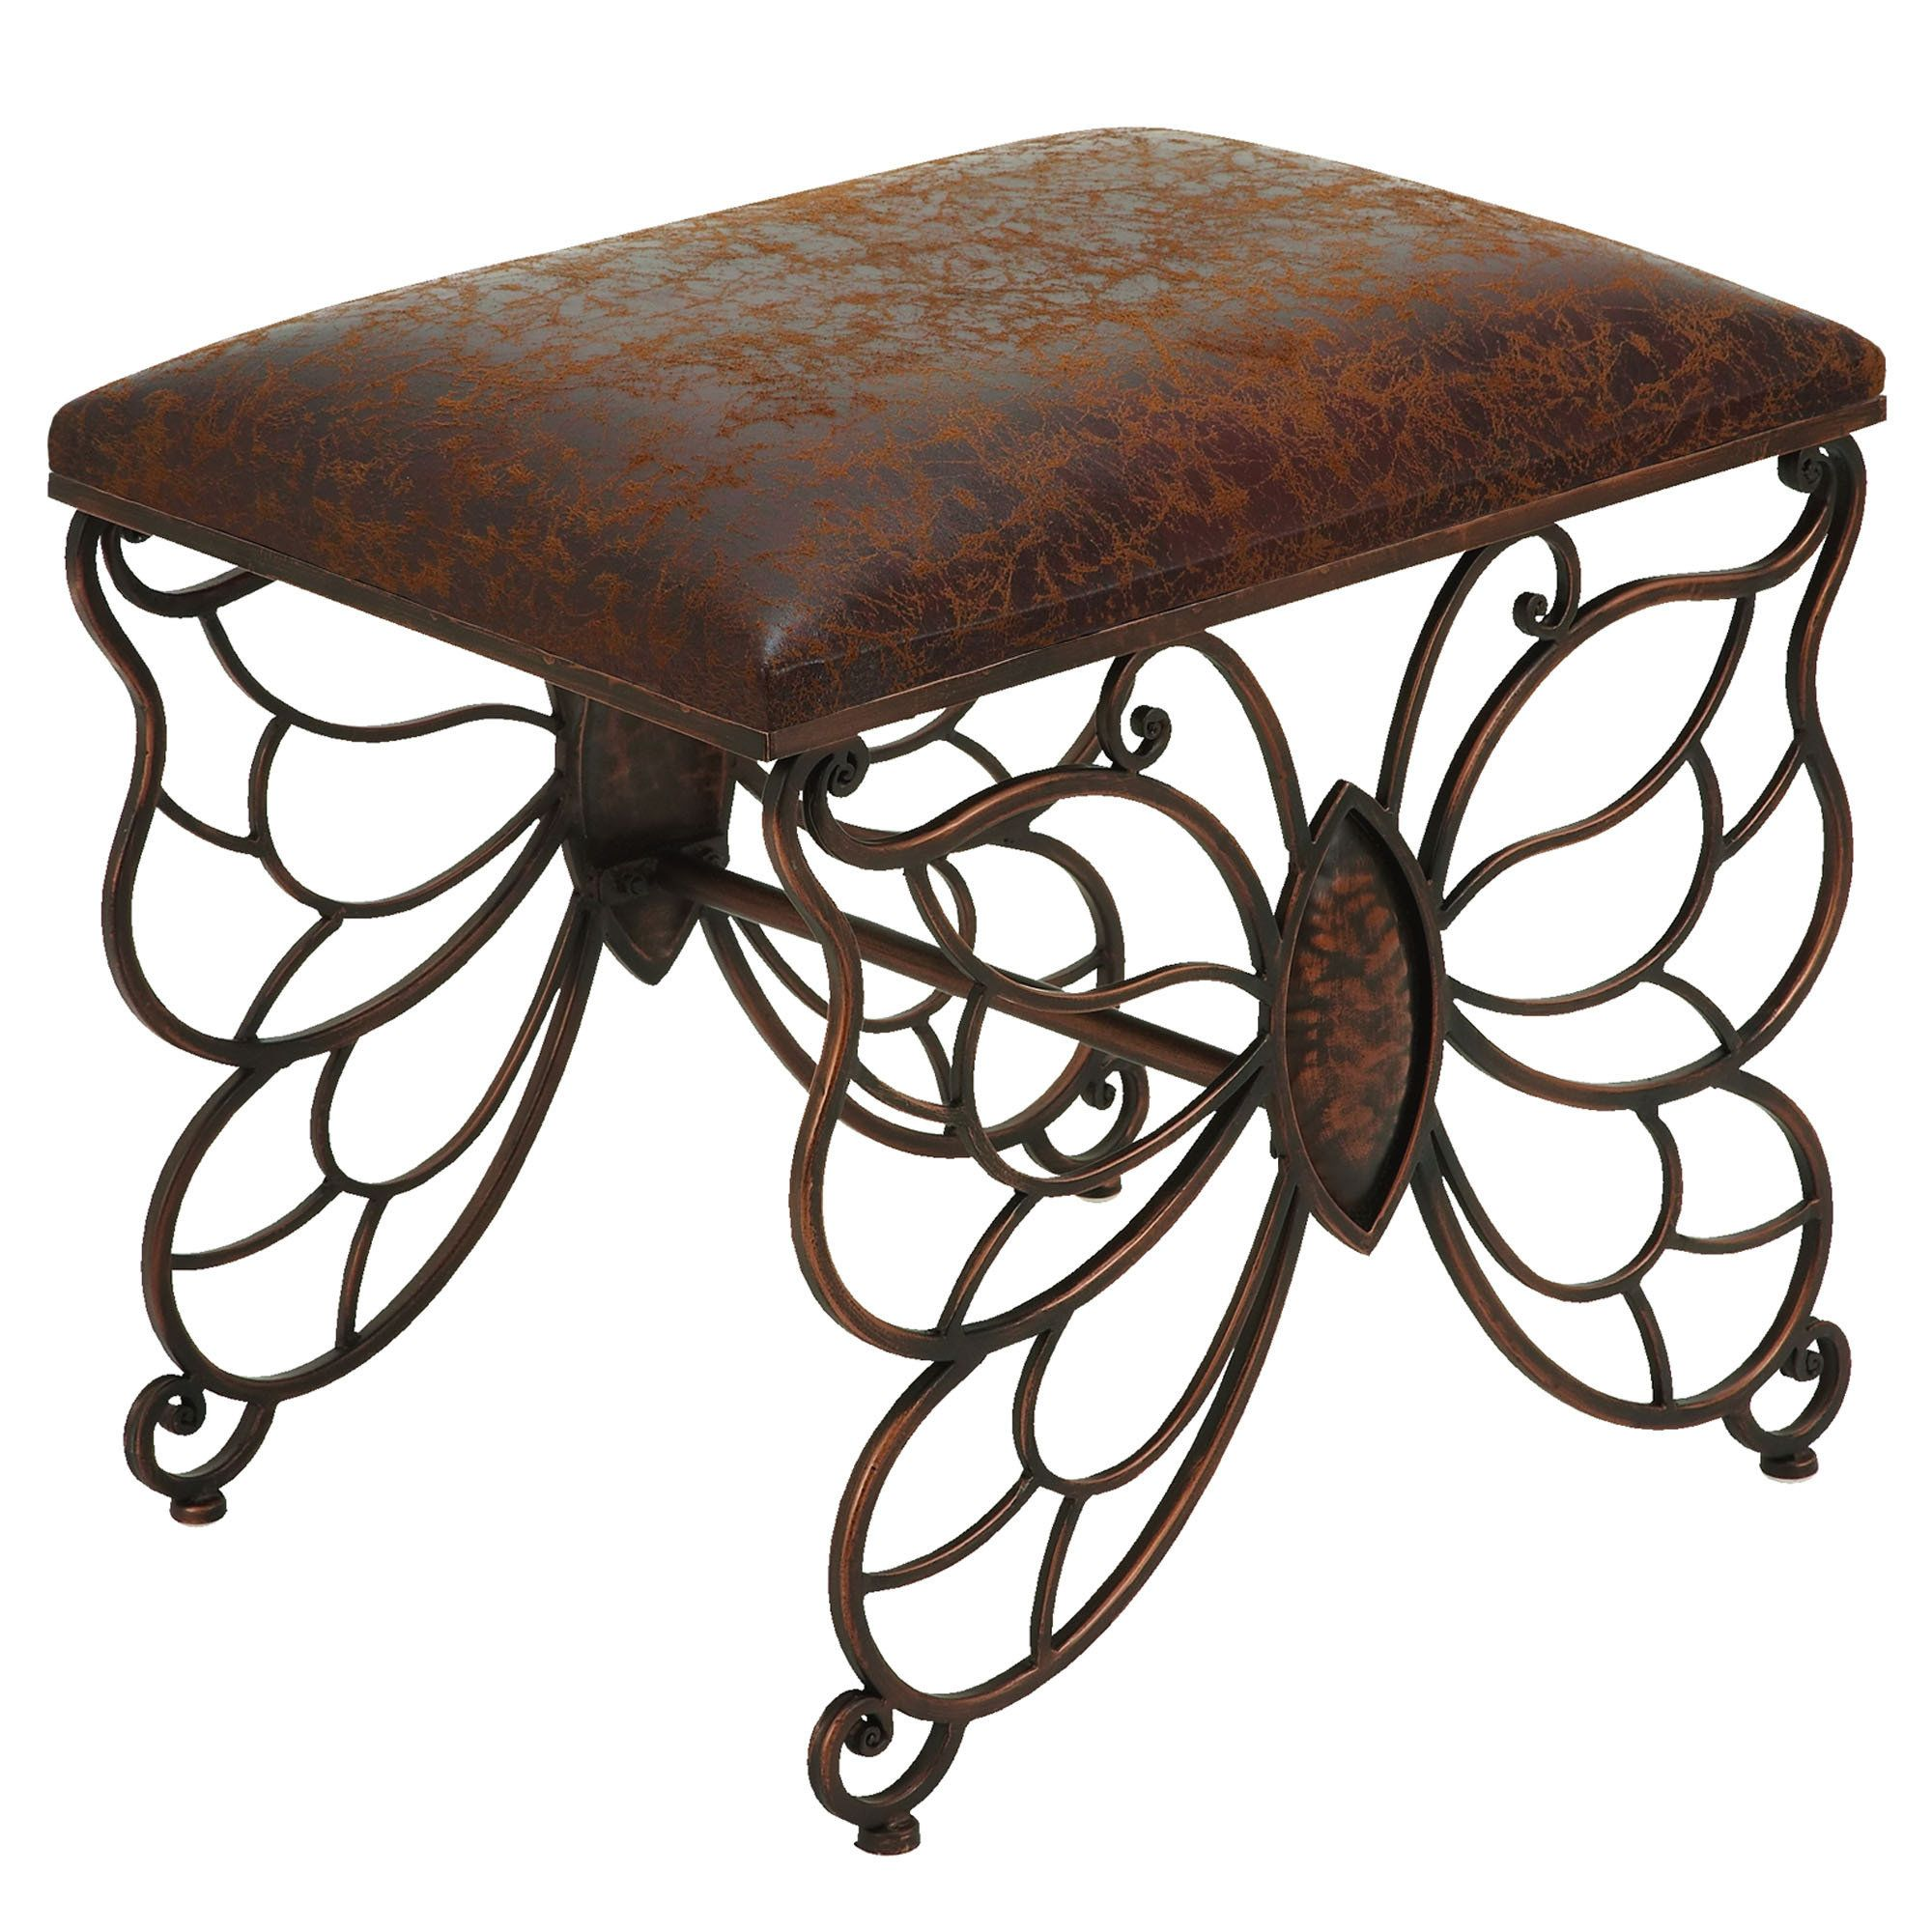 Flights Of Fancy Butterfly Upholstered Accent Stool Metal Stool Leather Stool Upholstered Accent Stool